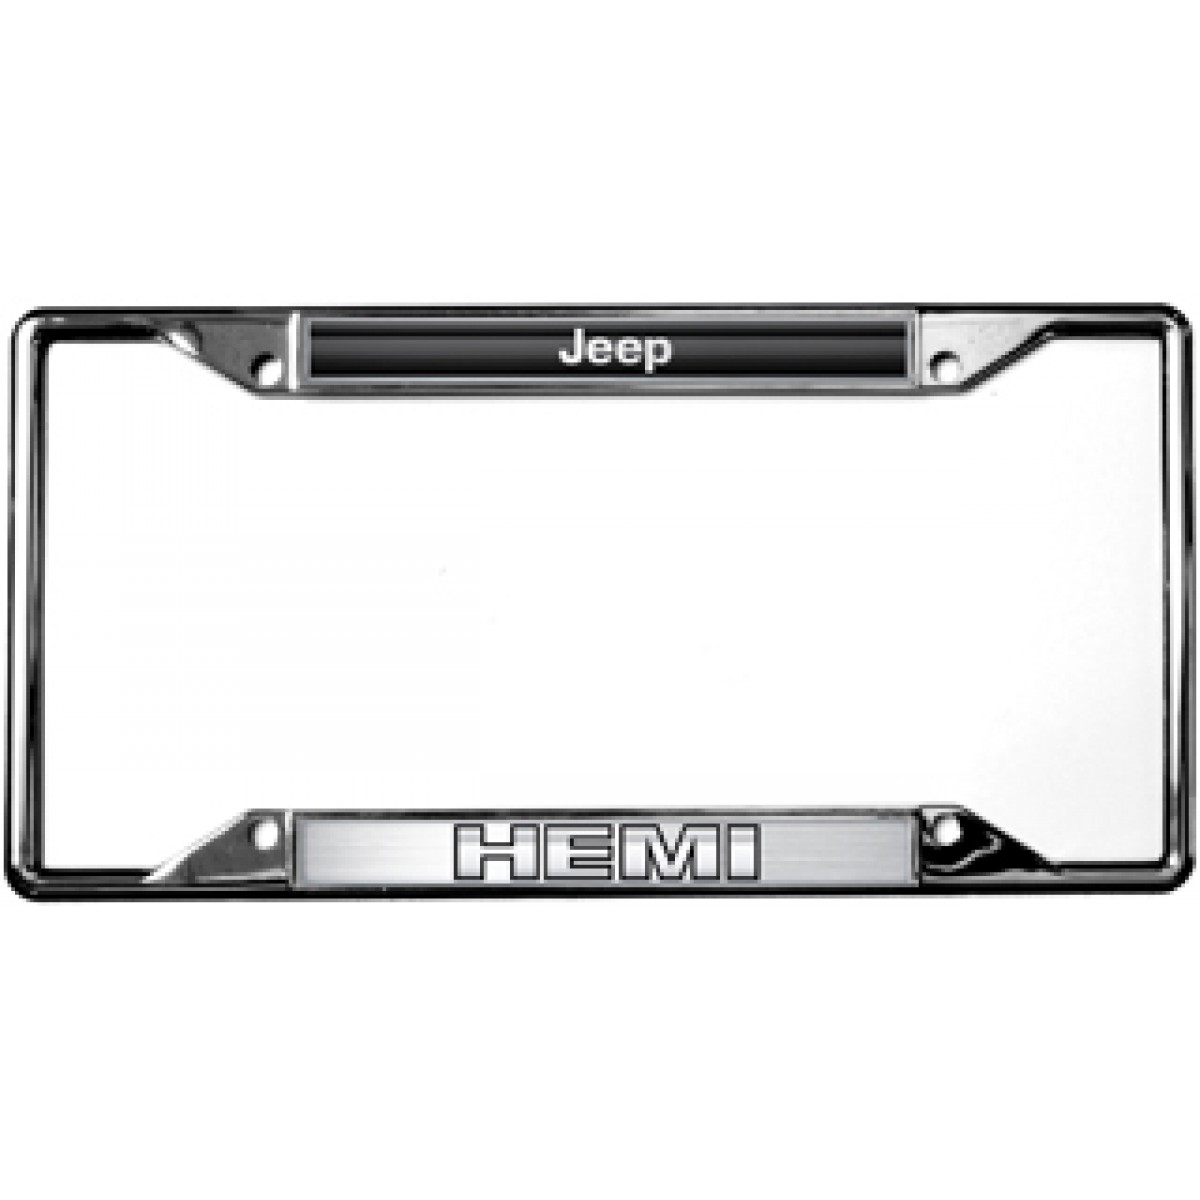 Jeep HEMI License Plate Frame